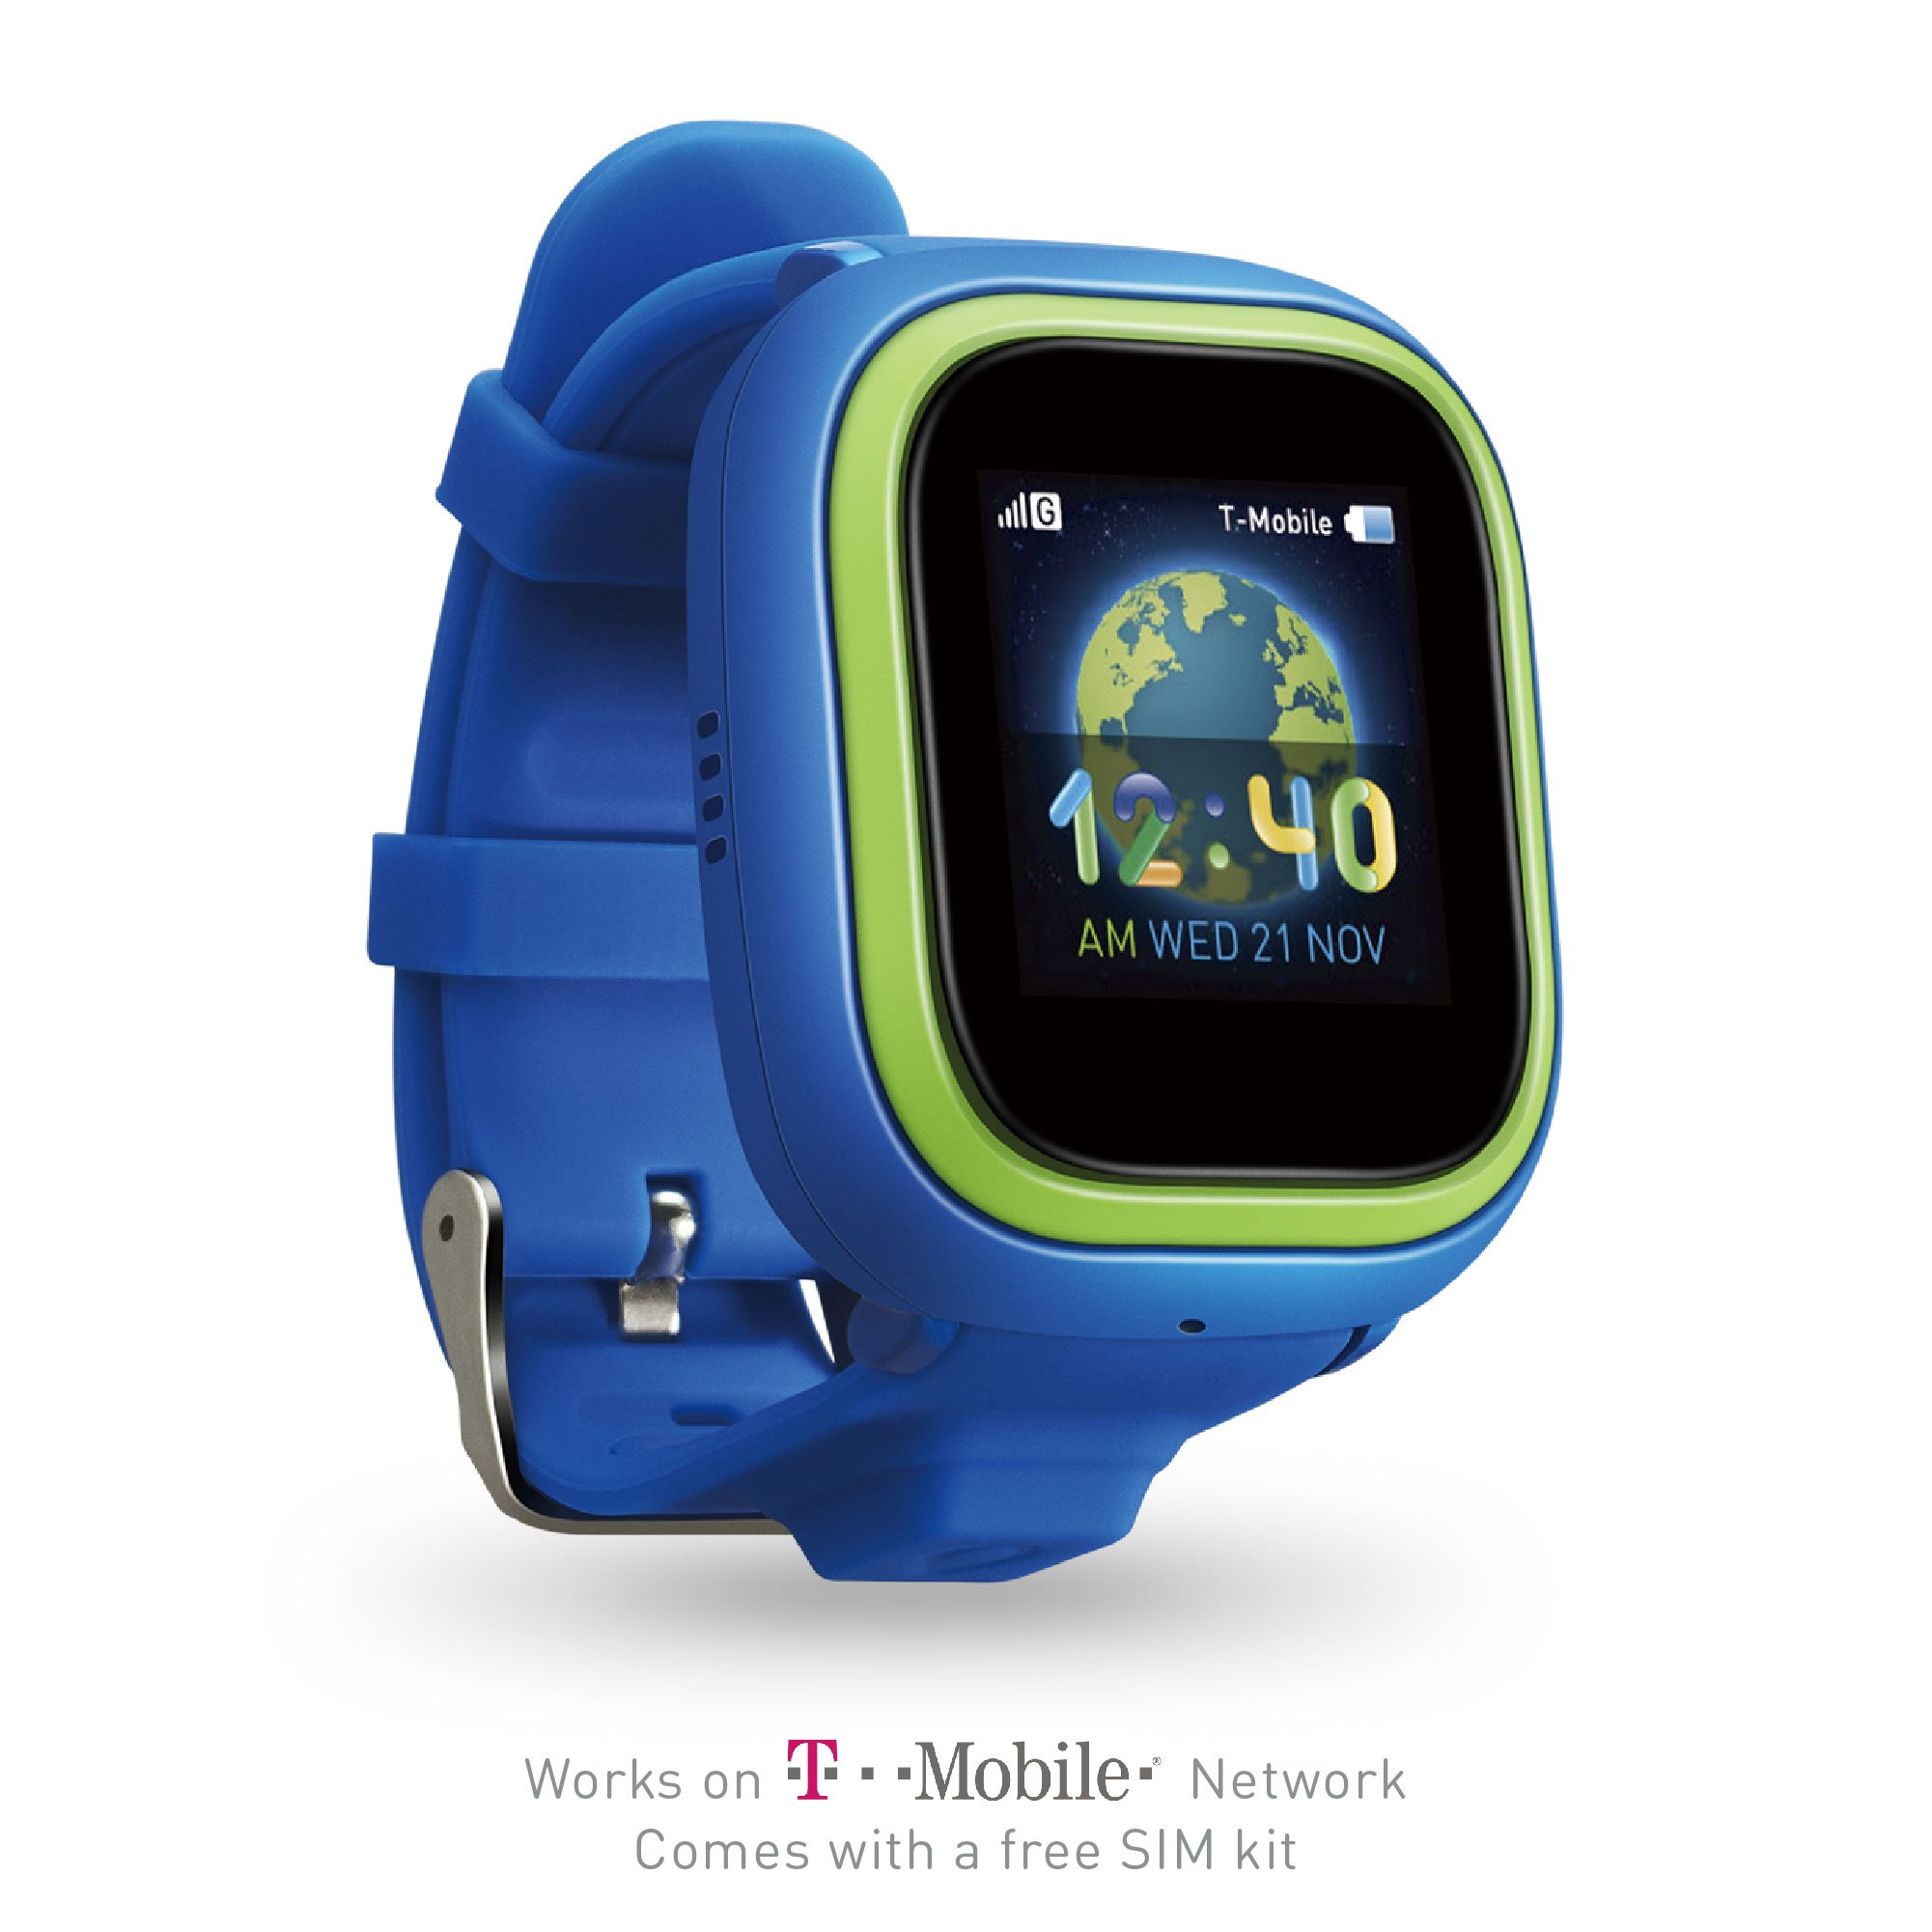 NEW TickTalk 2 Touch Screen Kids Smart Watch, GPS Phone watch, Anti Lost GPS tracker with New App, Better Positioning Chip, Things To Do Reminder, Phone/Messaging SIM CARD INCLUDED (Blue with Green)